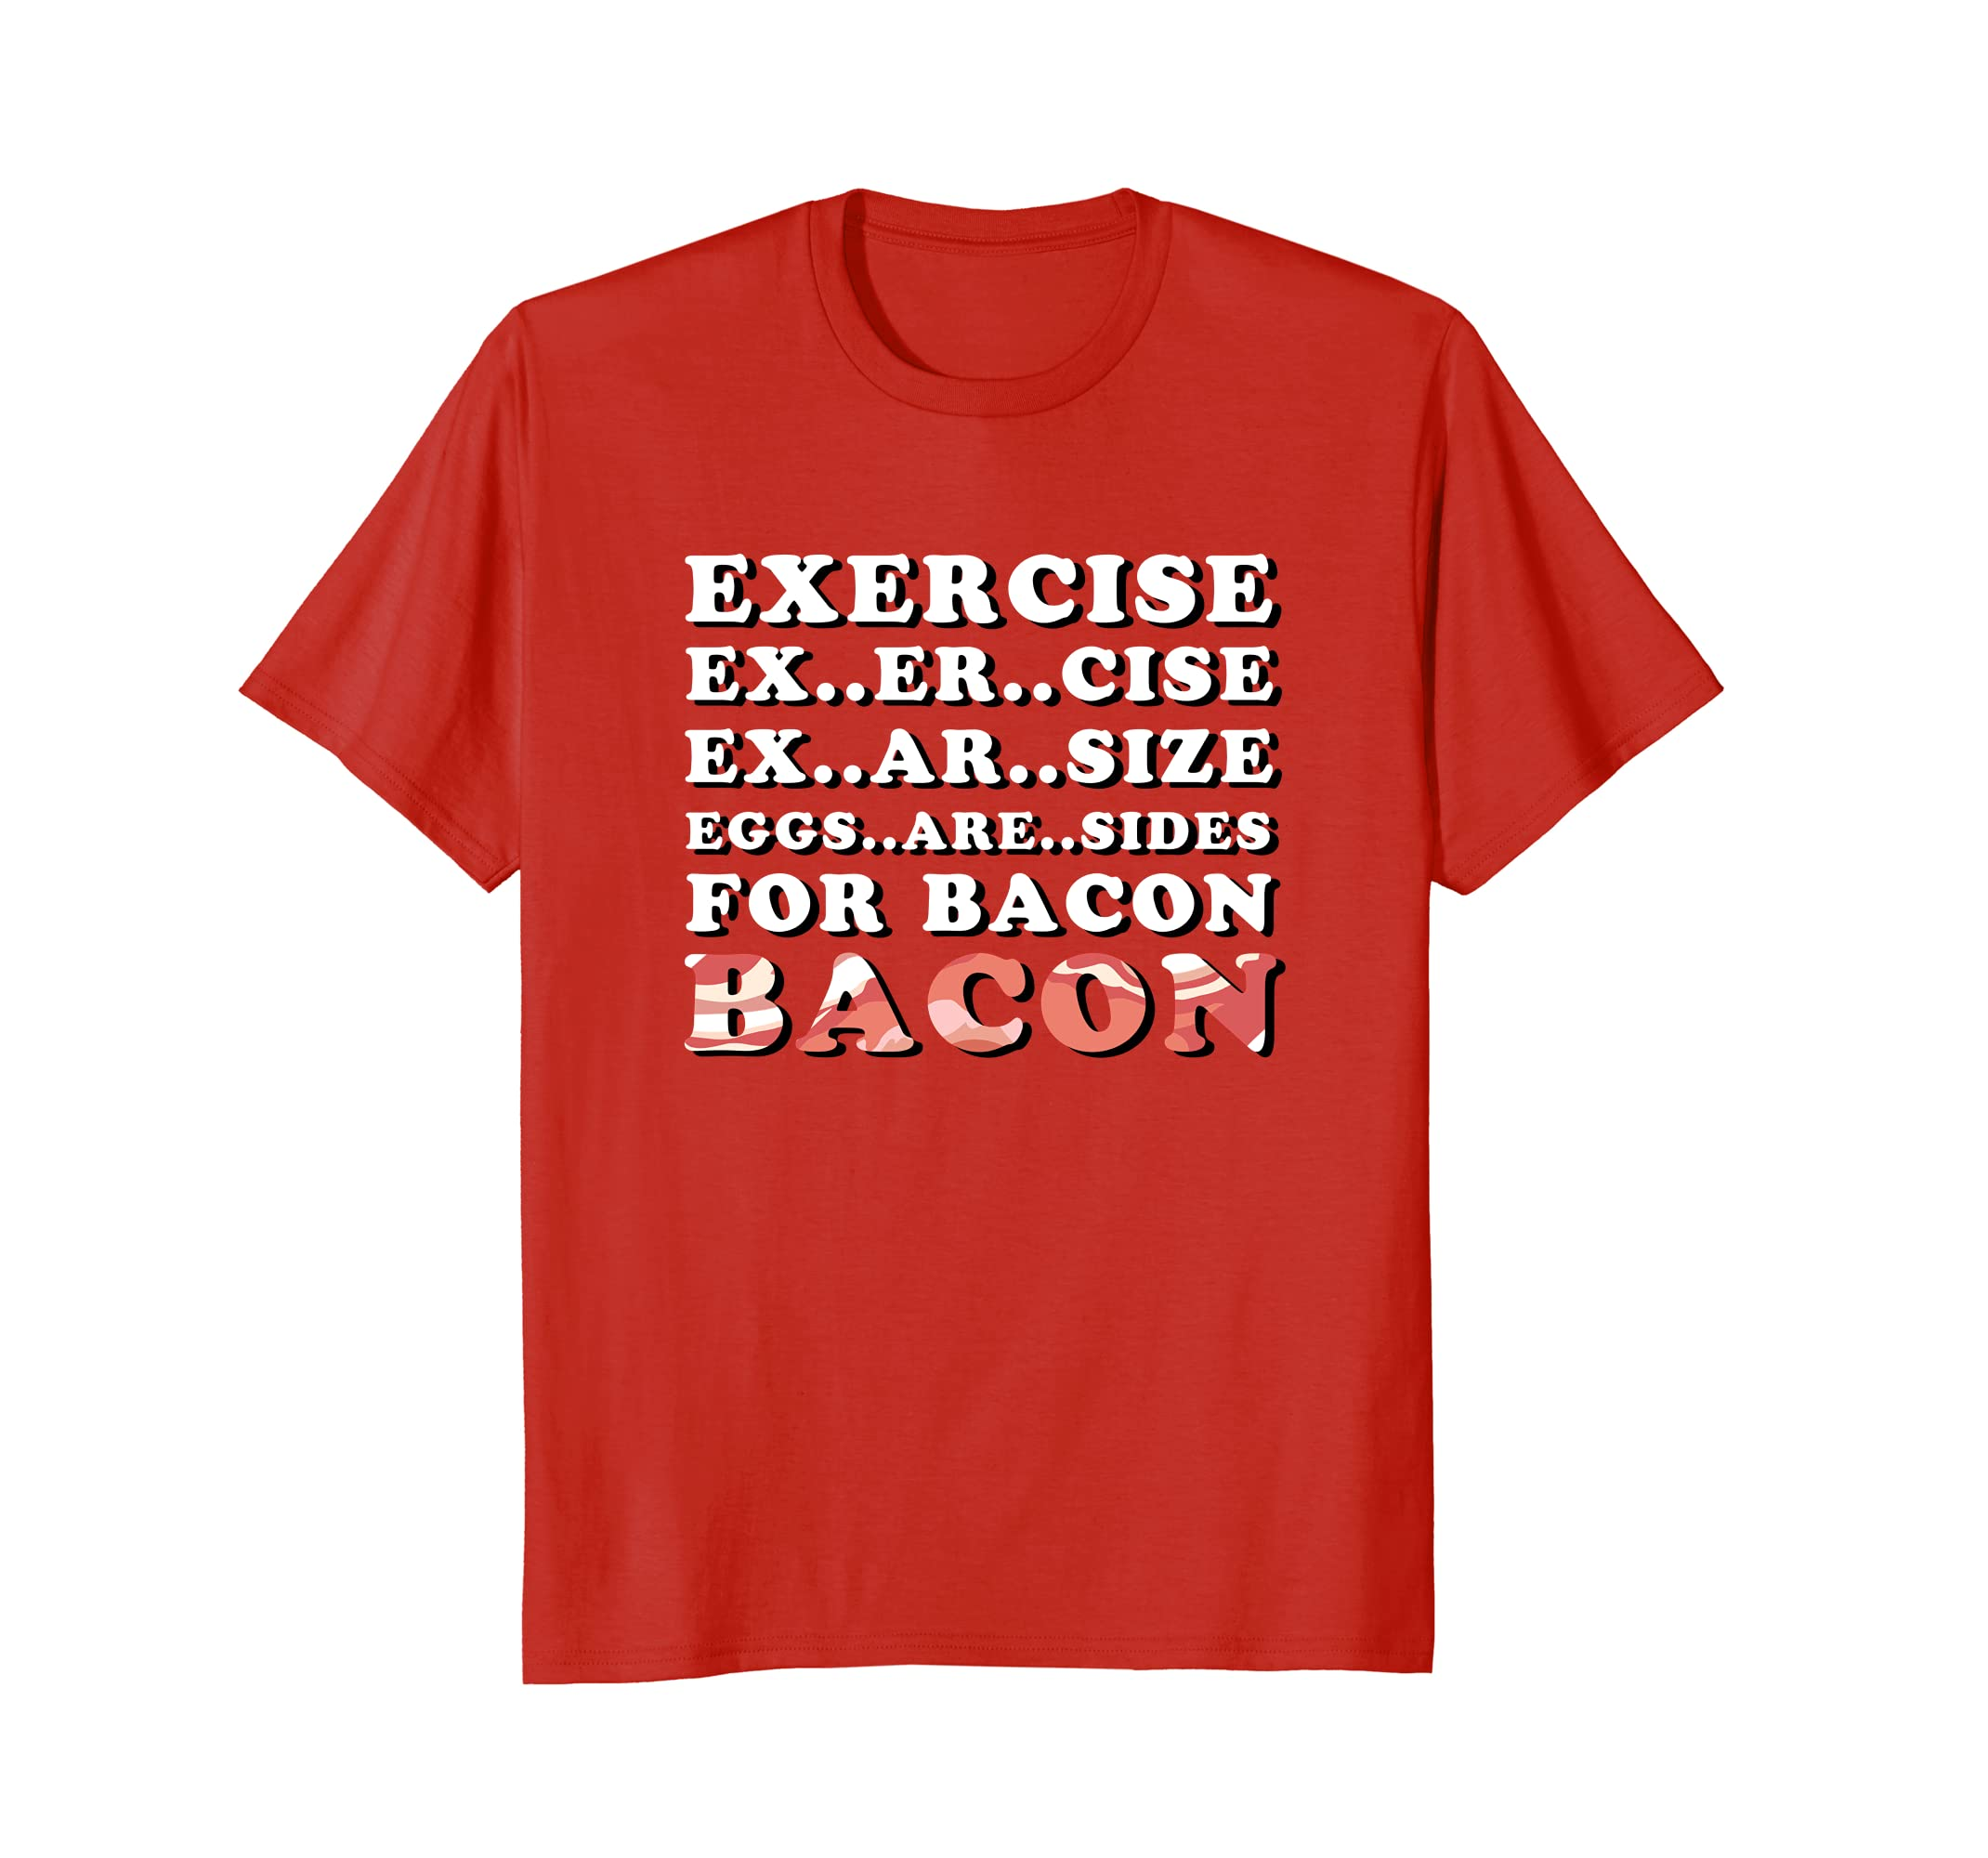 4f5989216 Amazon.com: Funny Workout T Shirts for Men and Women - Bacon T Shirts:  Clothing